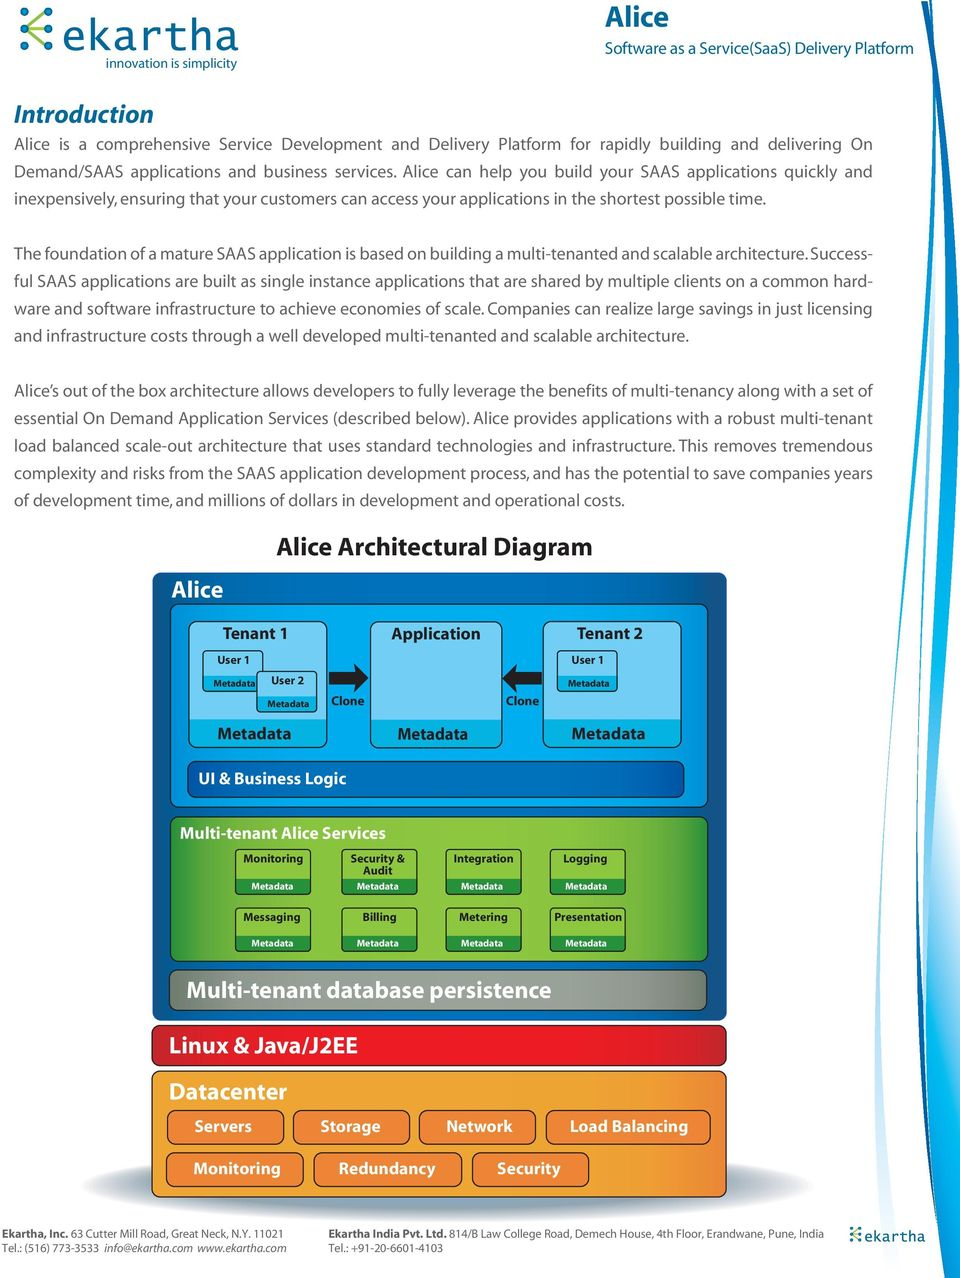 The foundation of a mature SAAS application is based on building a multi-tenanted and scalable architecture.